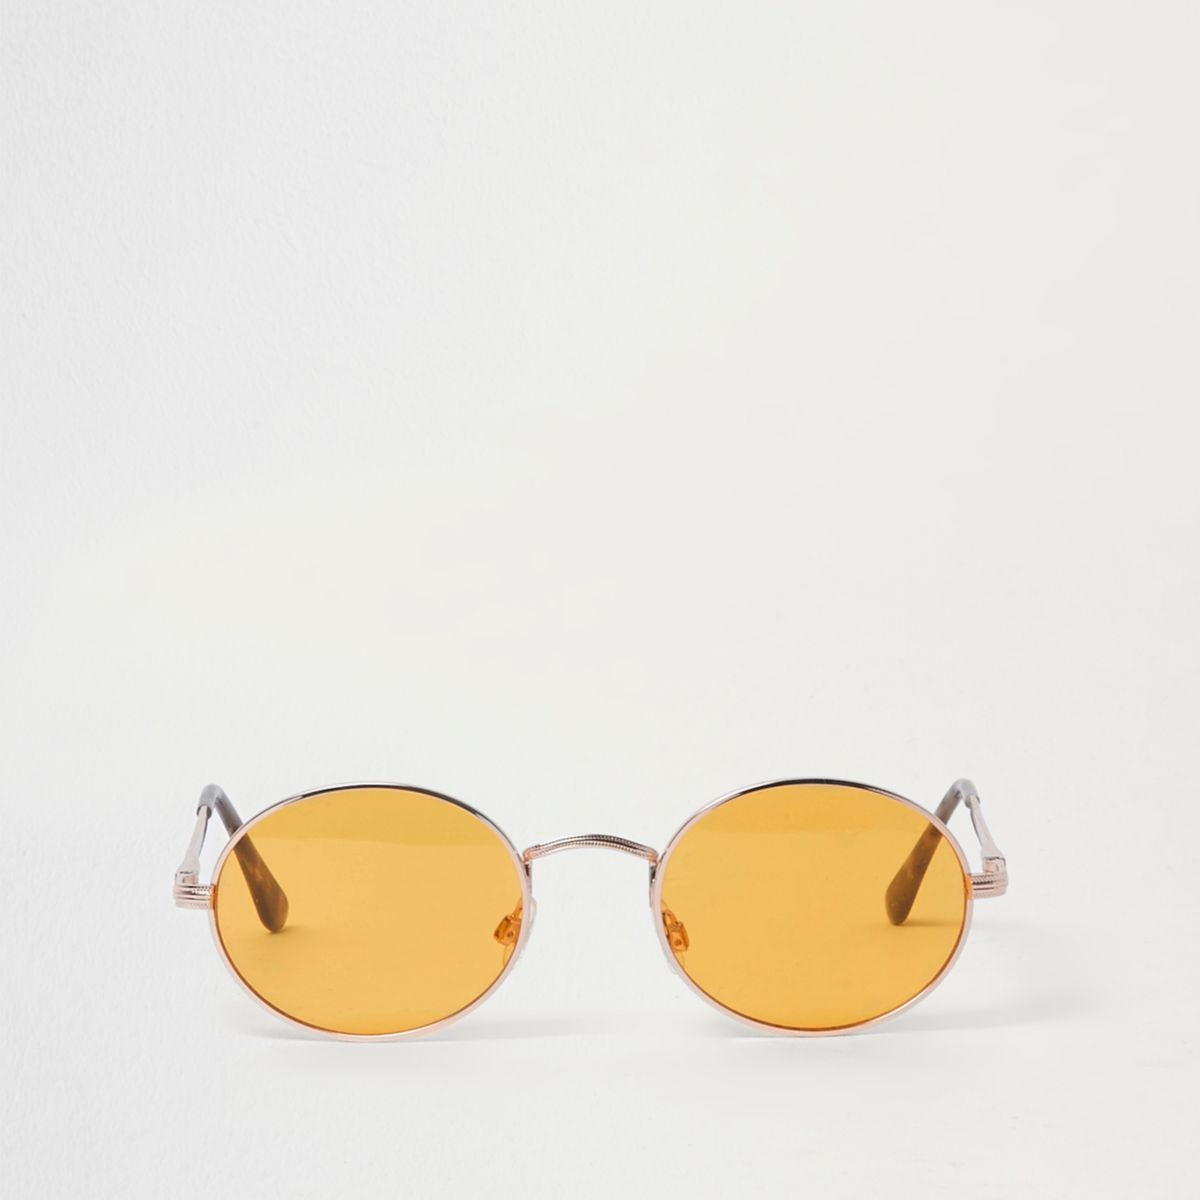 Gold tone oval yellow lens sunglasses